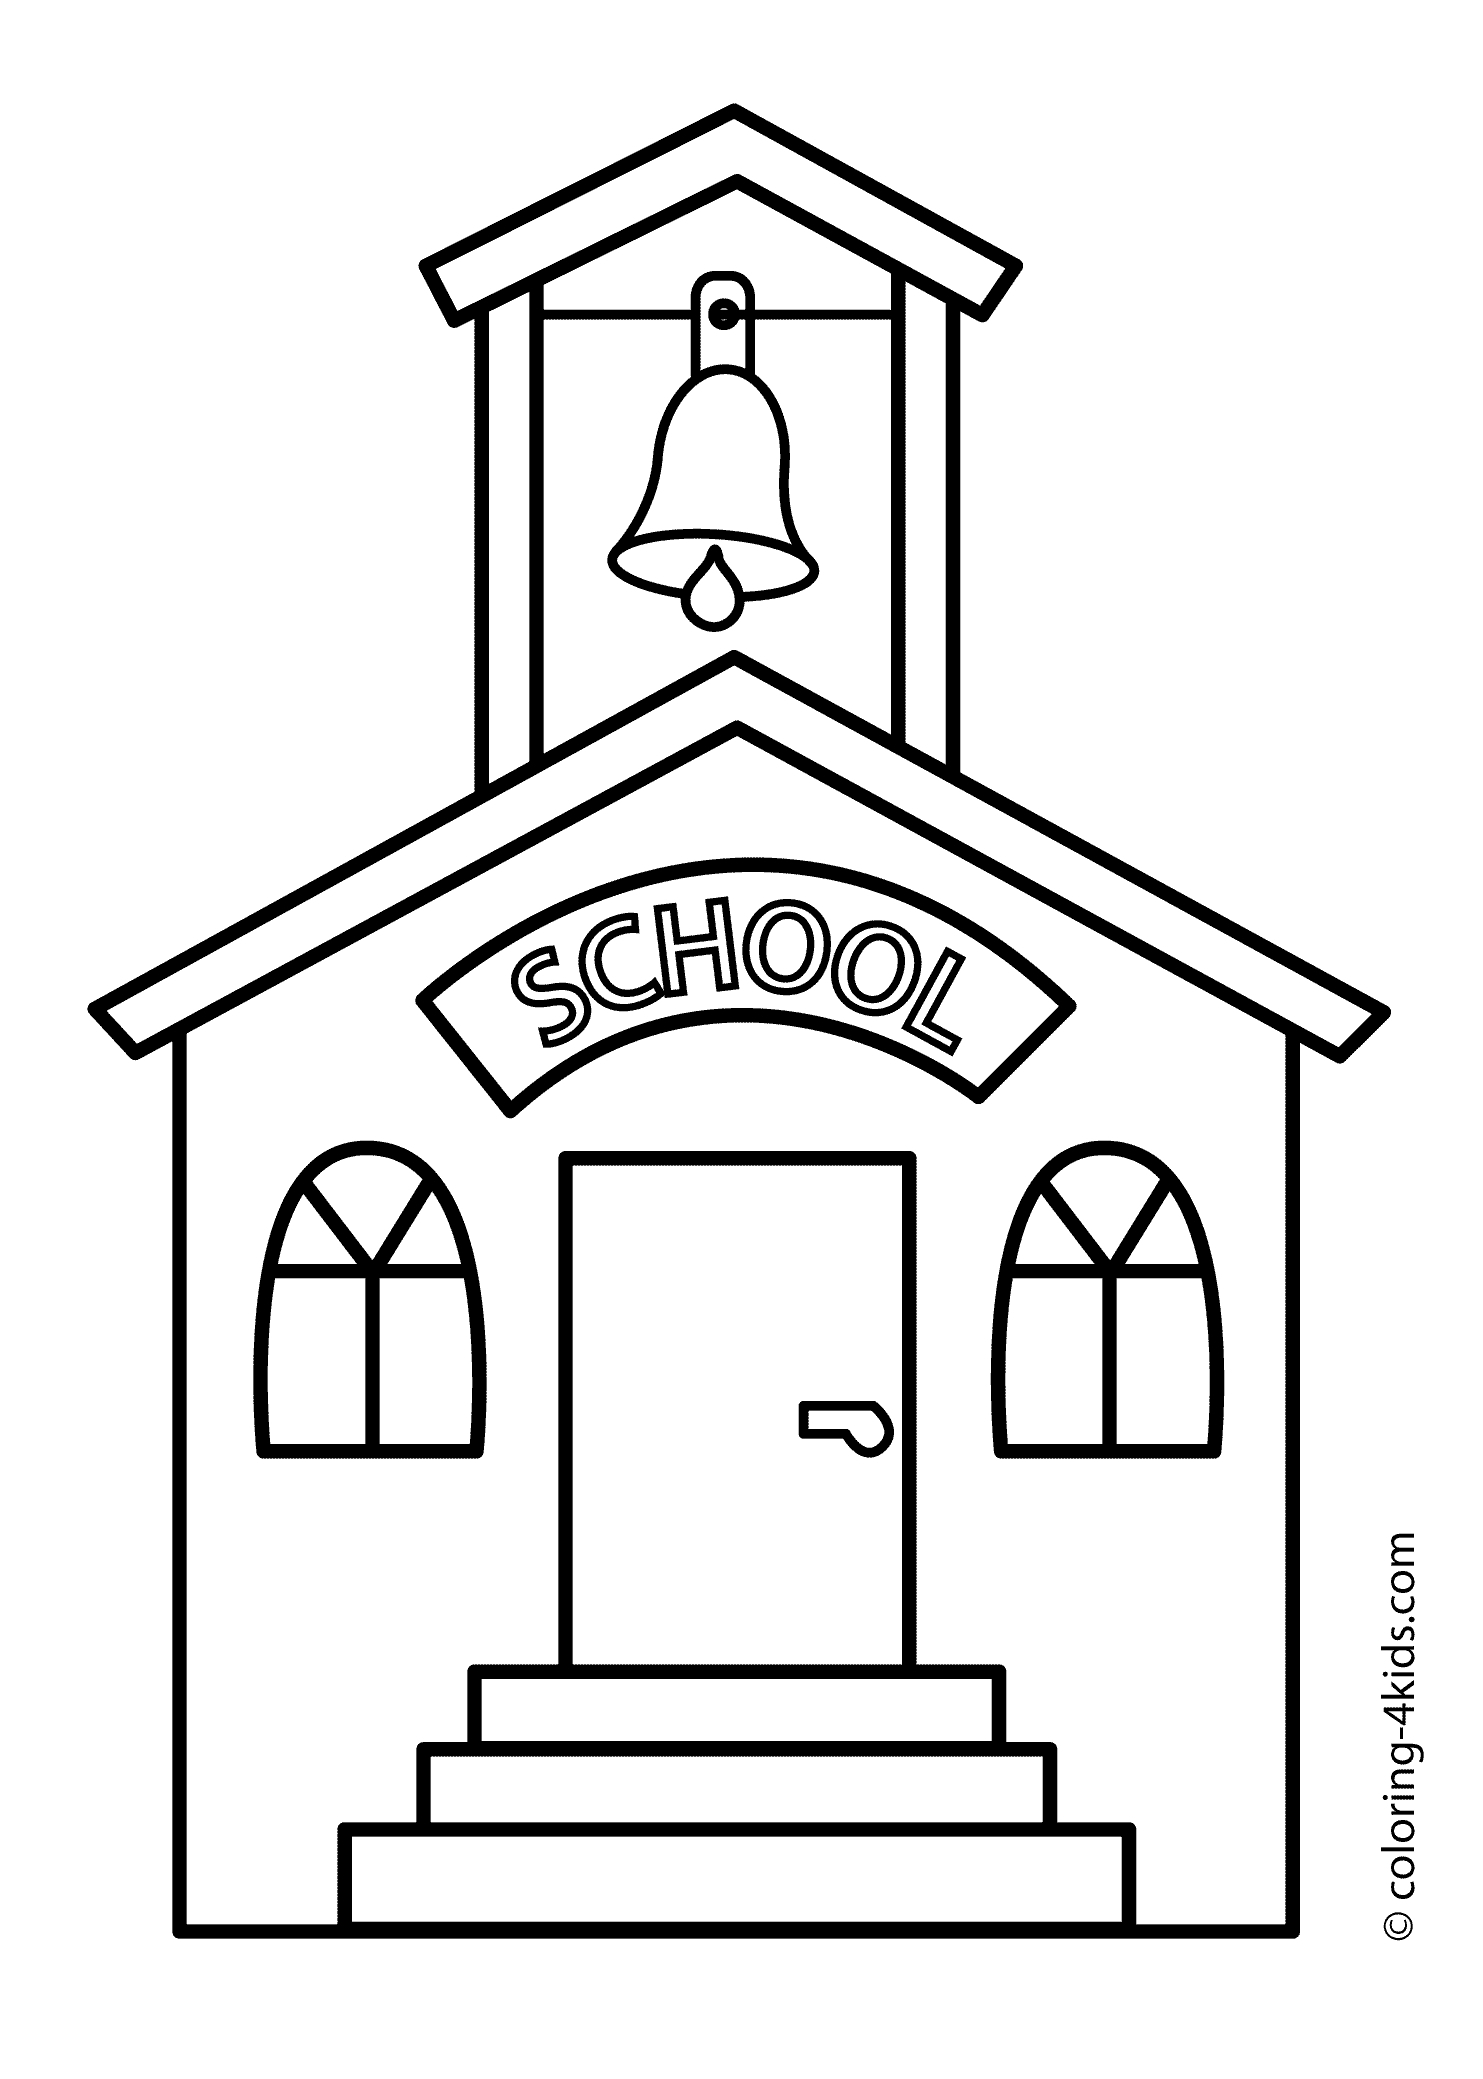 School House Coloring Page Download Of School Coloring Pages with 35 Coloring Page A School Small School Collection